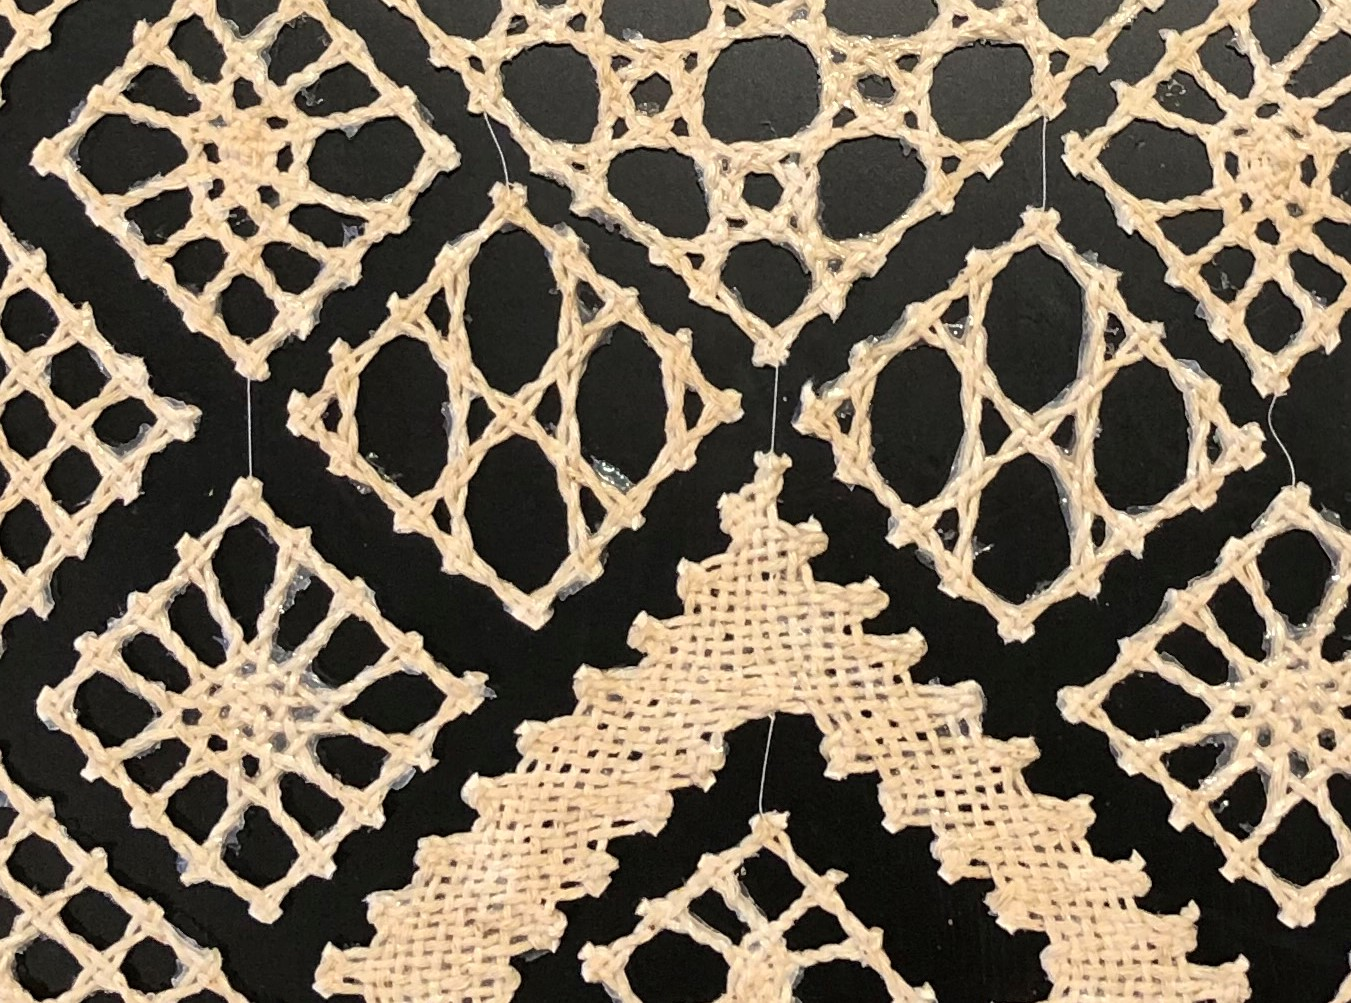 Elements of Lace (detail)